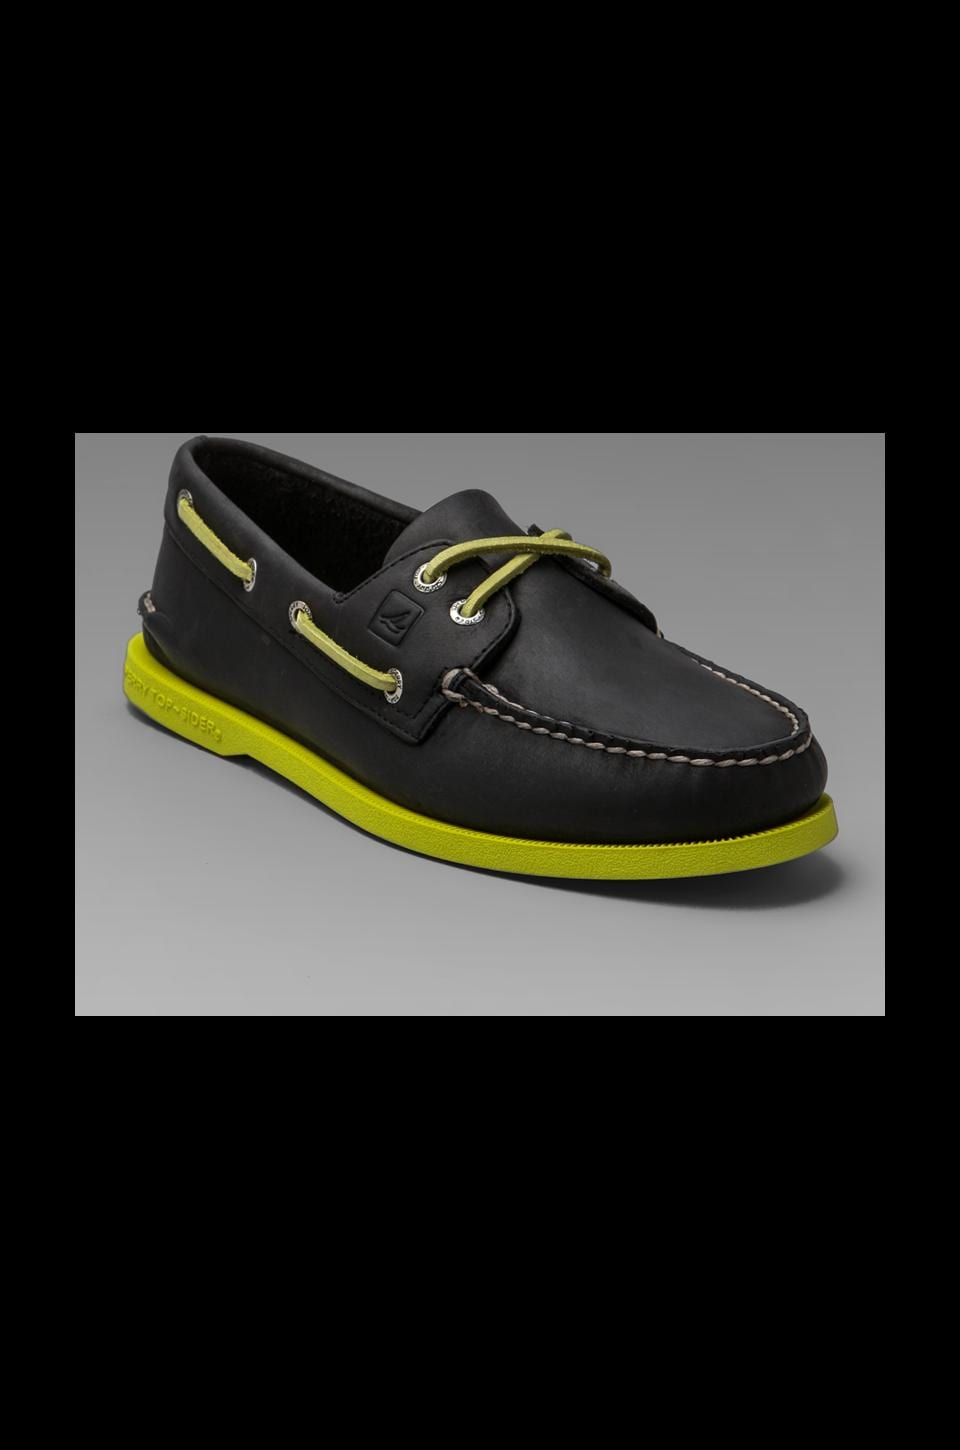 Sperry Top-Sider A/O 2-Eye Neon en Black/Neon Yellow